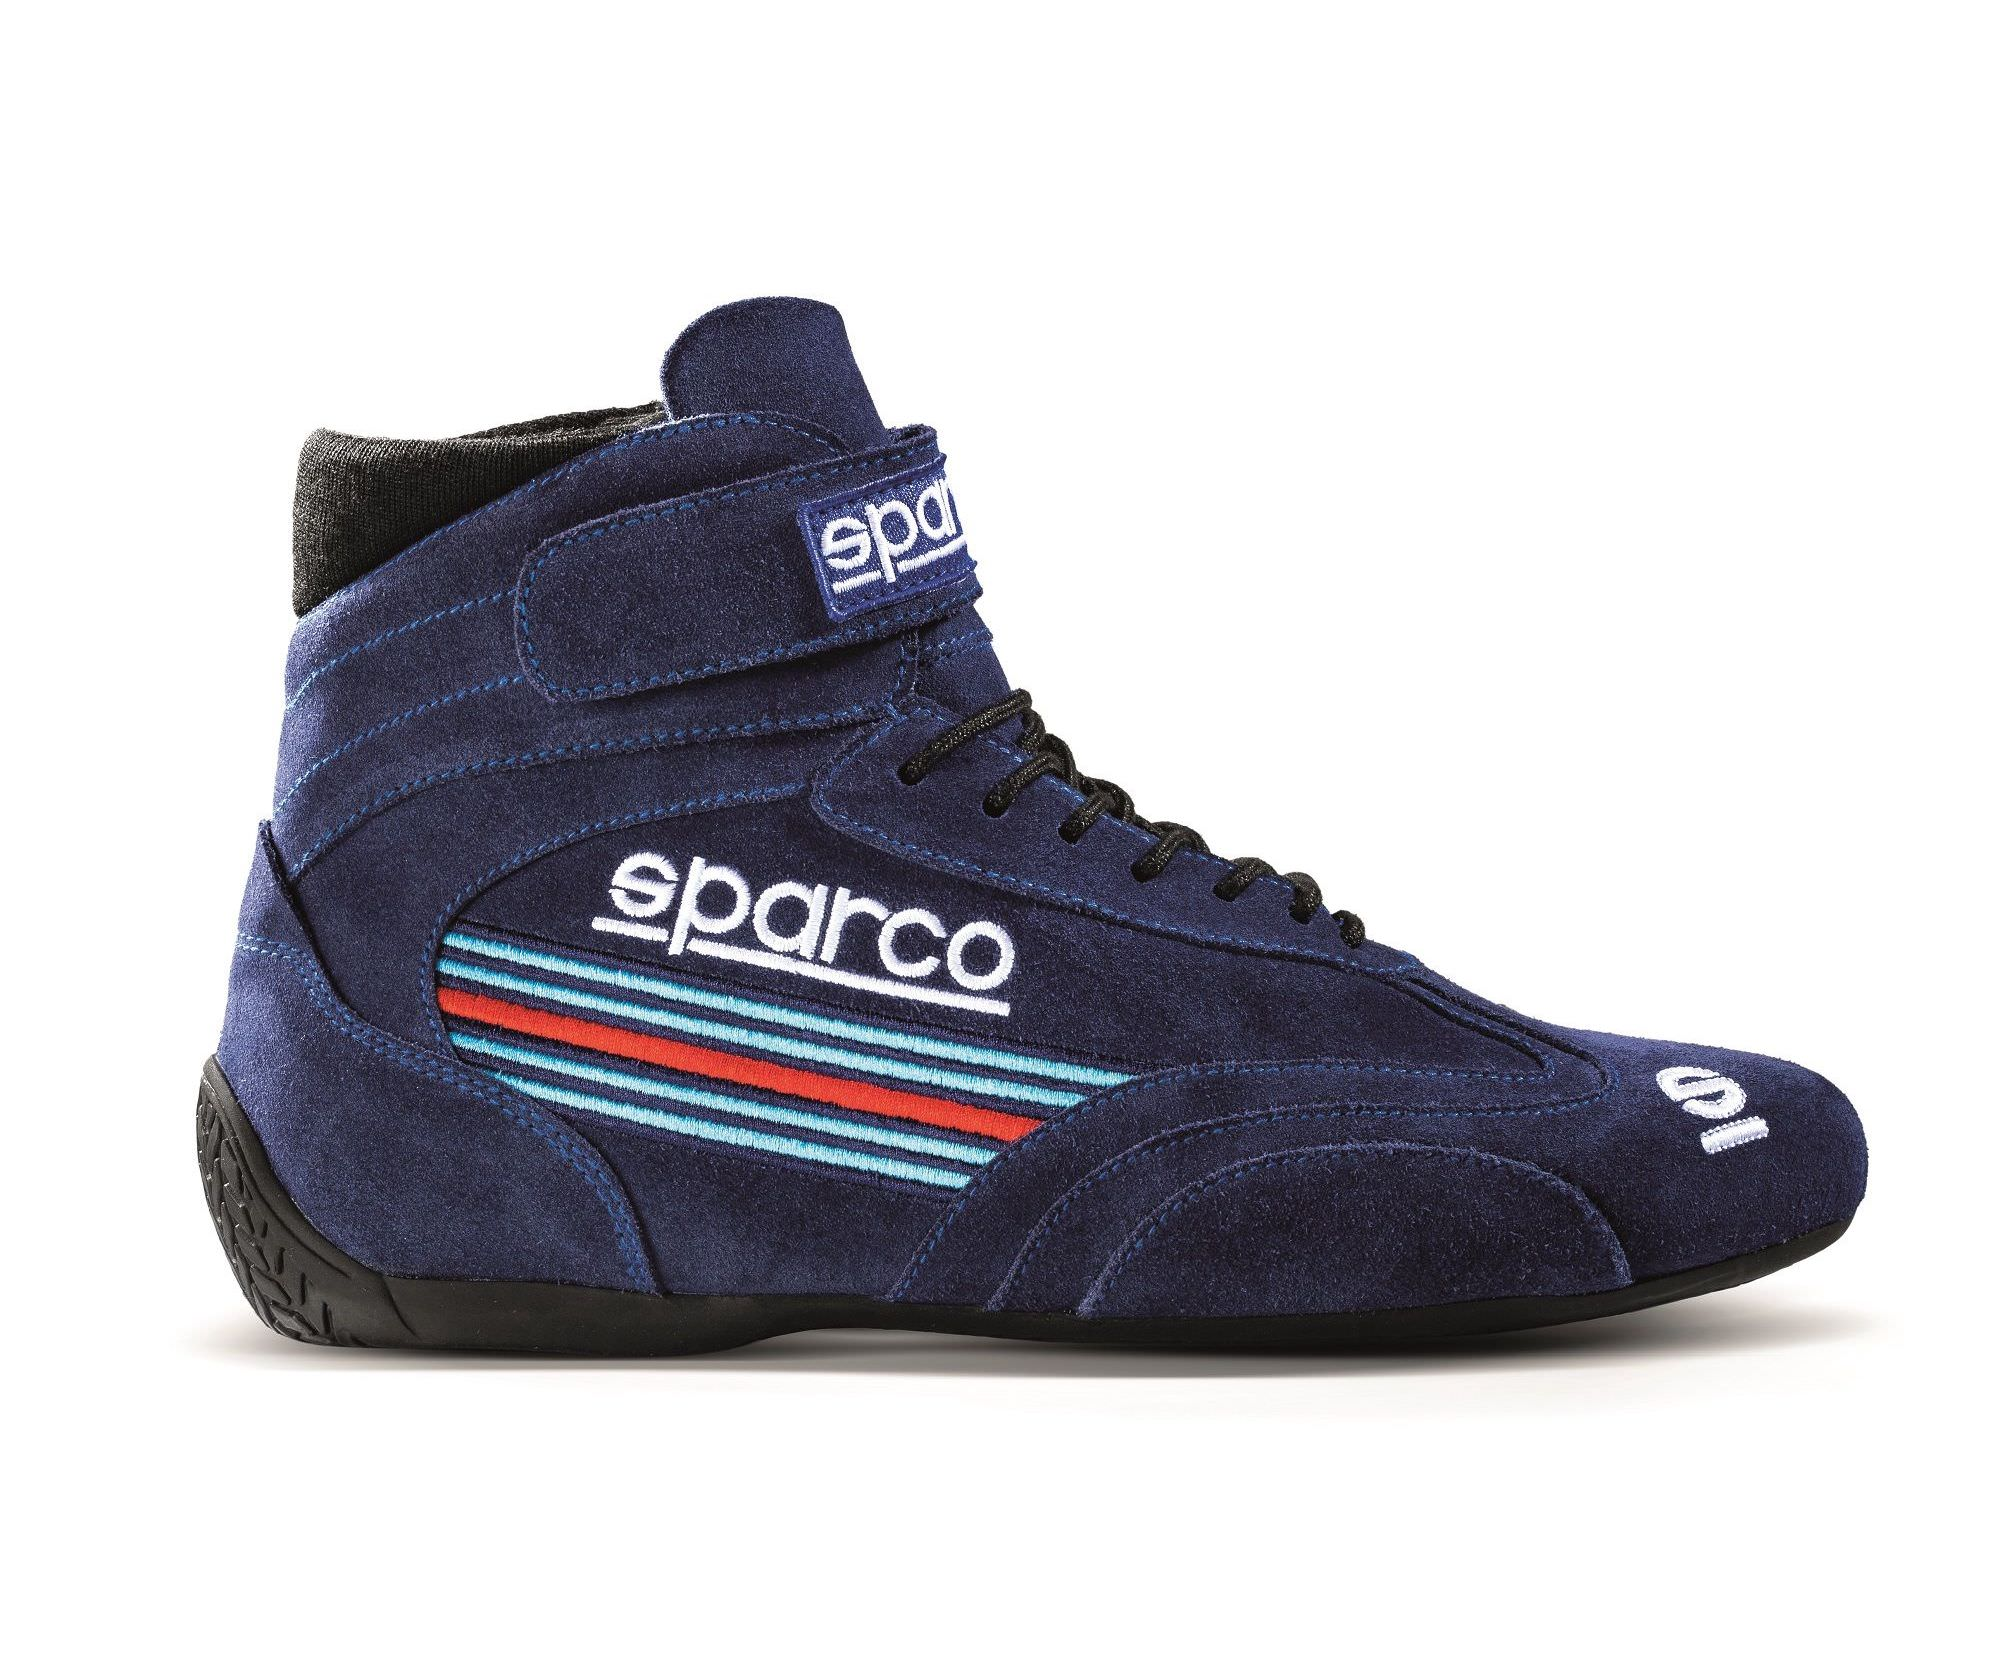 Sparco Top Martini Racing Race Boots – $201 USD